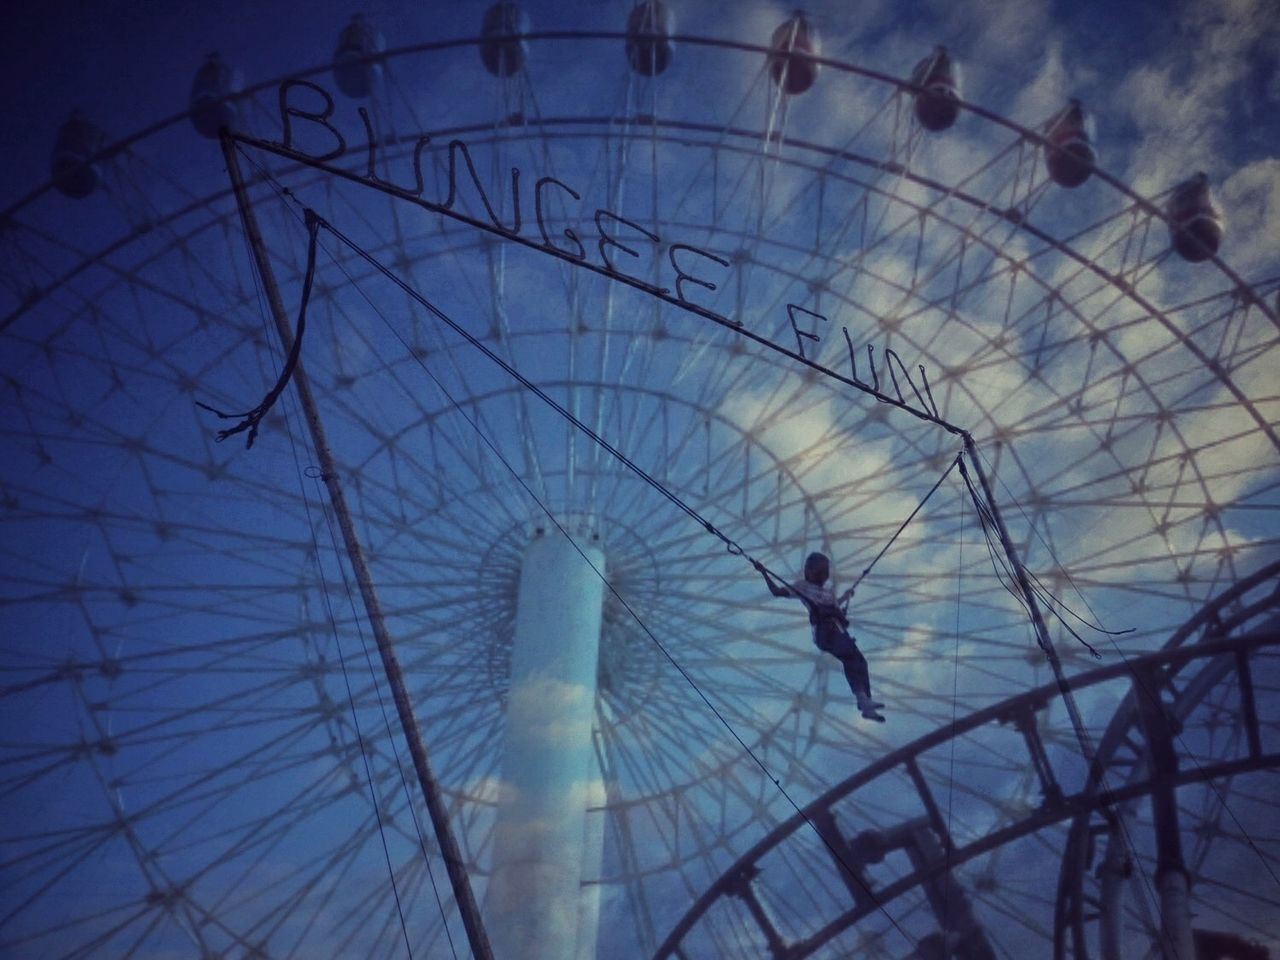 real people, leisure activity, silhouette, ferris wheel, lifestyles, day, outdoors, one person, sky, close-up, people